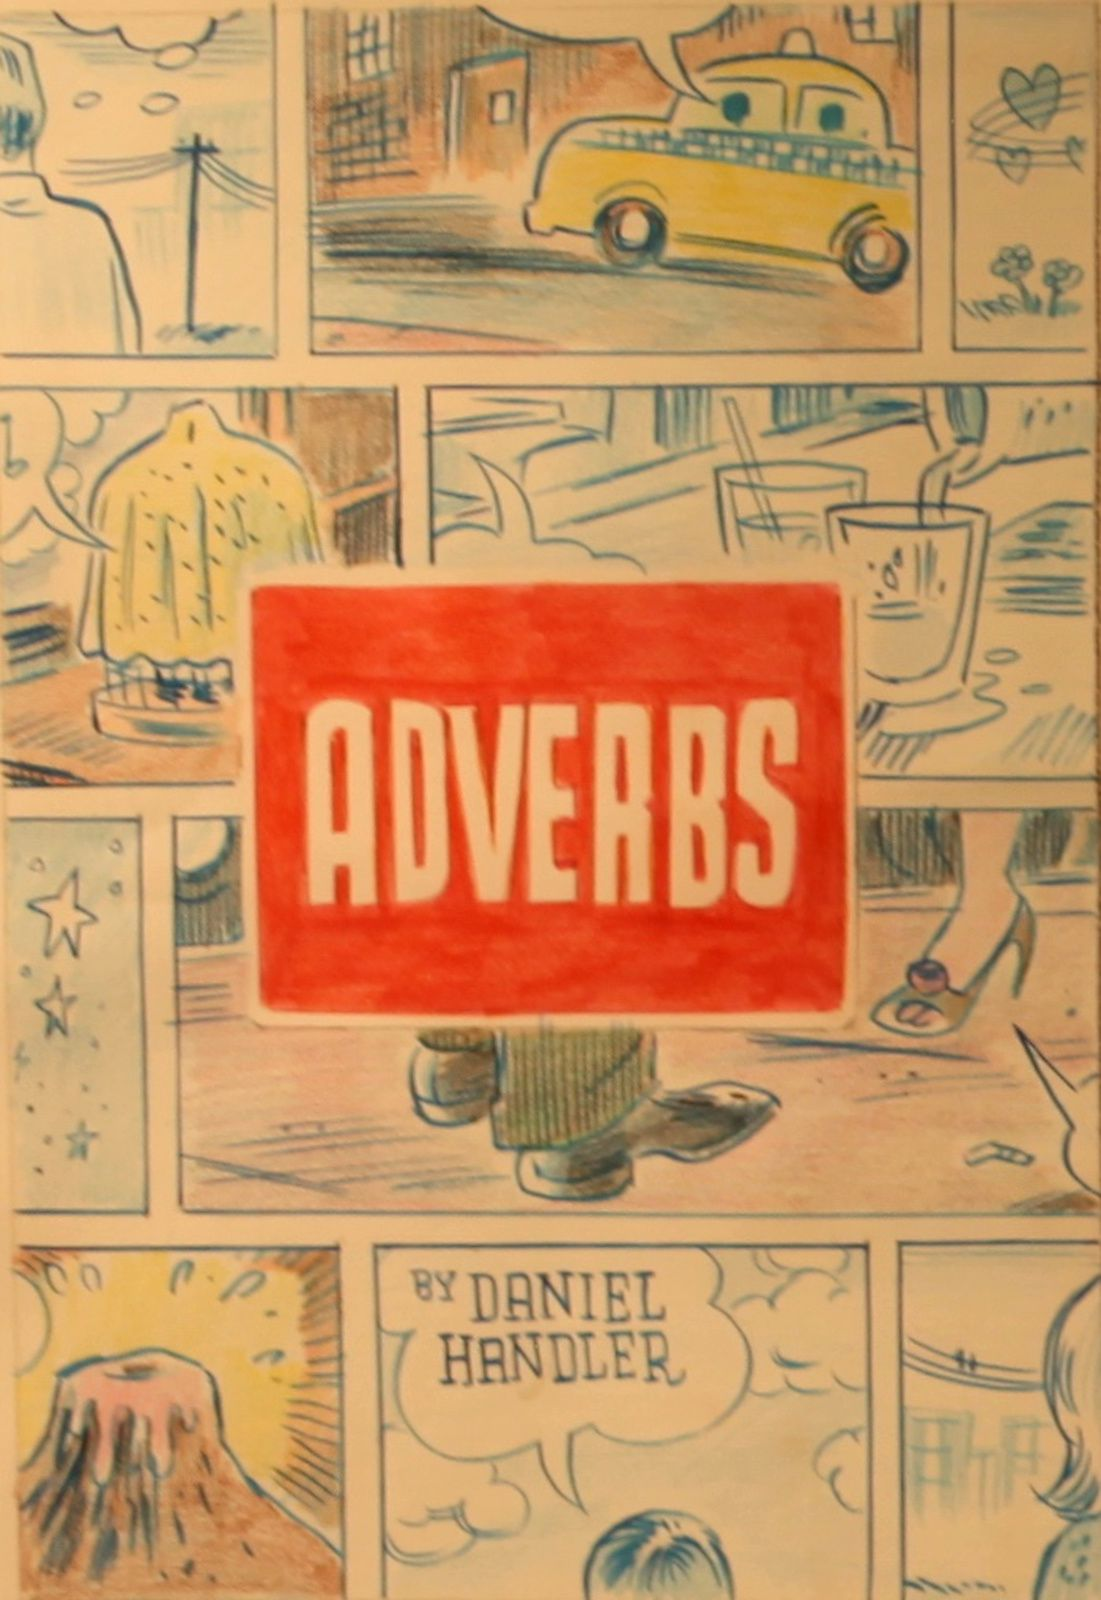 """Adverbs - Color Sketch for Daniel Handler novel cover"", 2005 de Daniel CLOWES - Courtesy Galerie Martel © Photo Éric Simon"